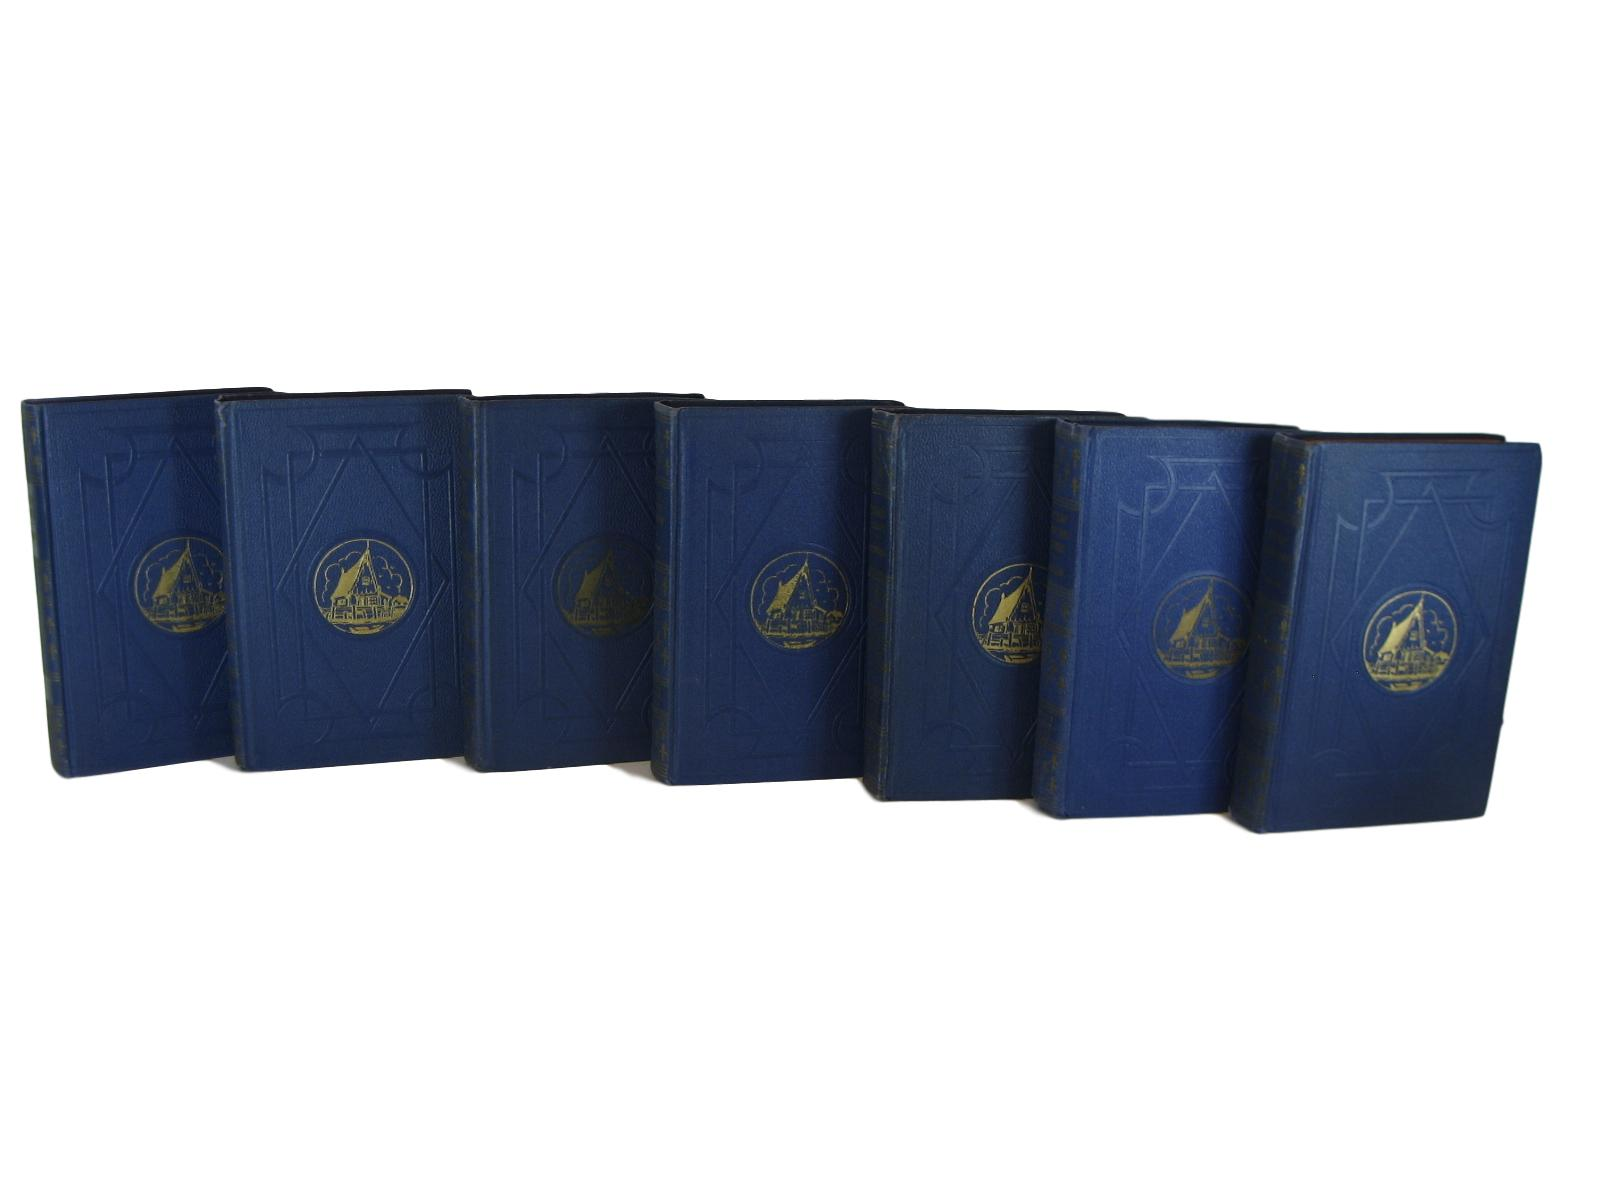 Blue Decorative Books for Display, S/7 - Decades of Vintage